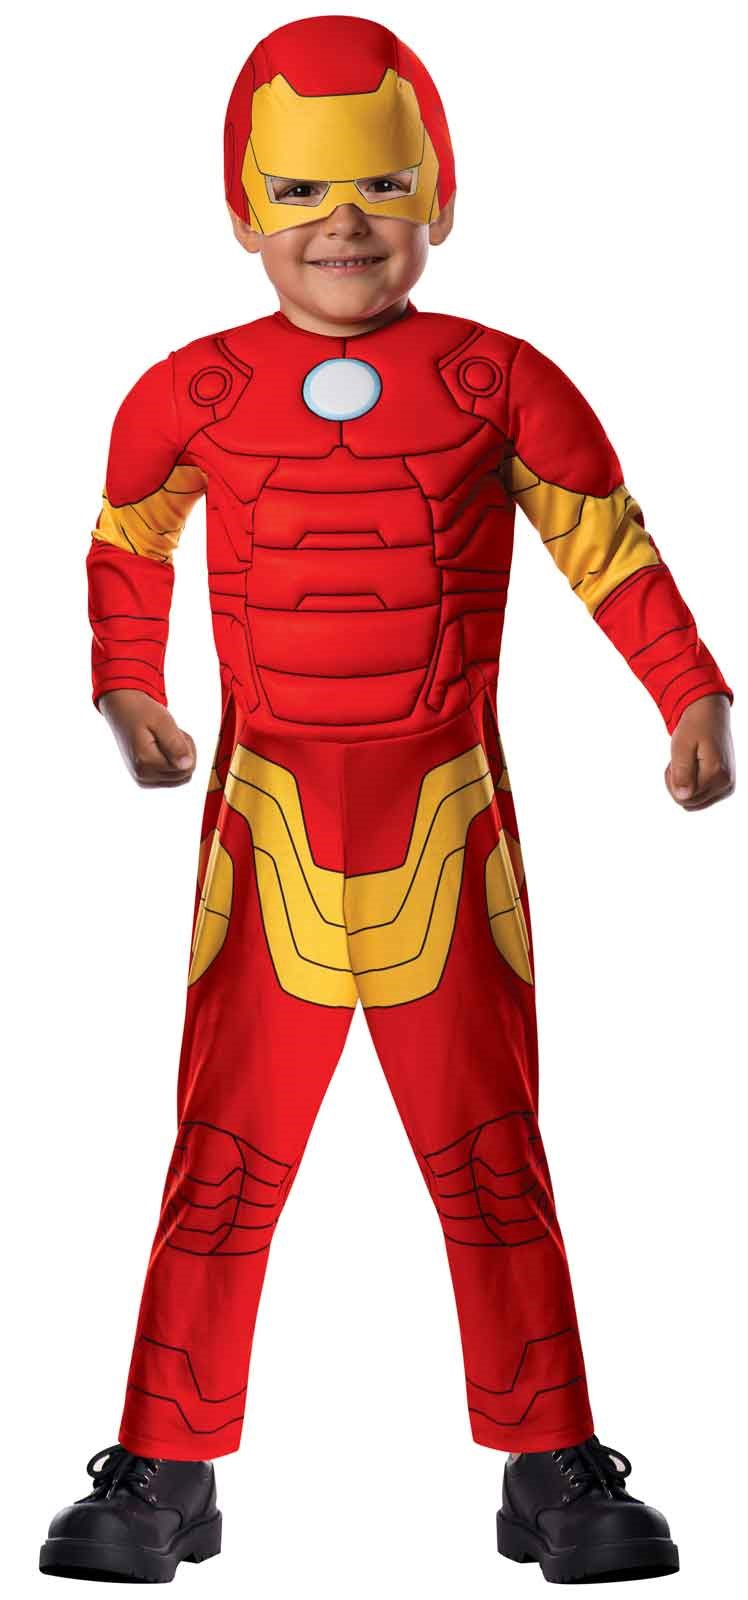 avengers assemble iron man toddler costume. Black Bedroom Furniture Sets. Home Design Ideas